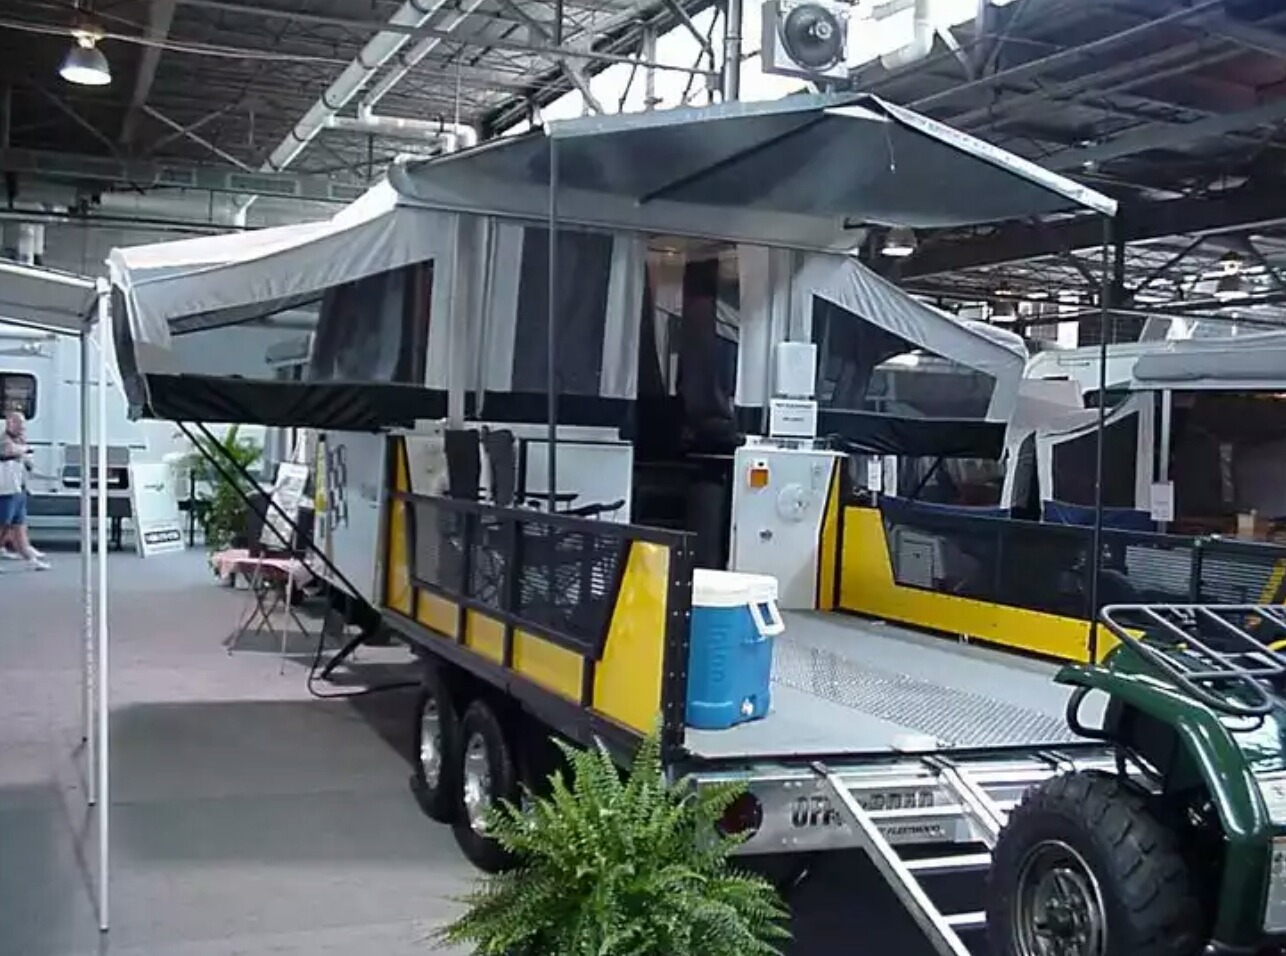 Toy Hauler with Slide-out folding camper and porch